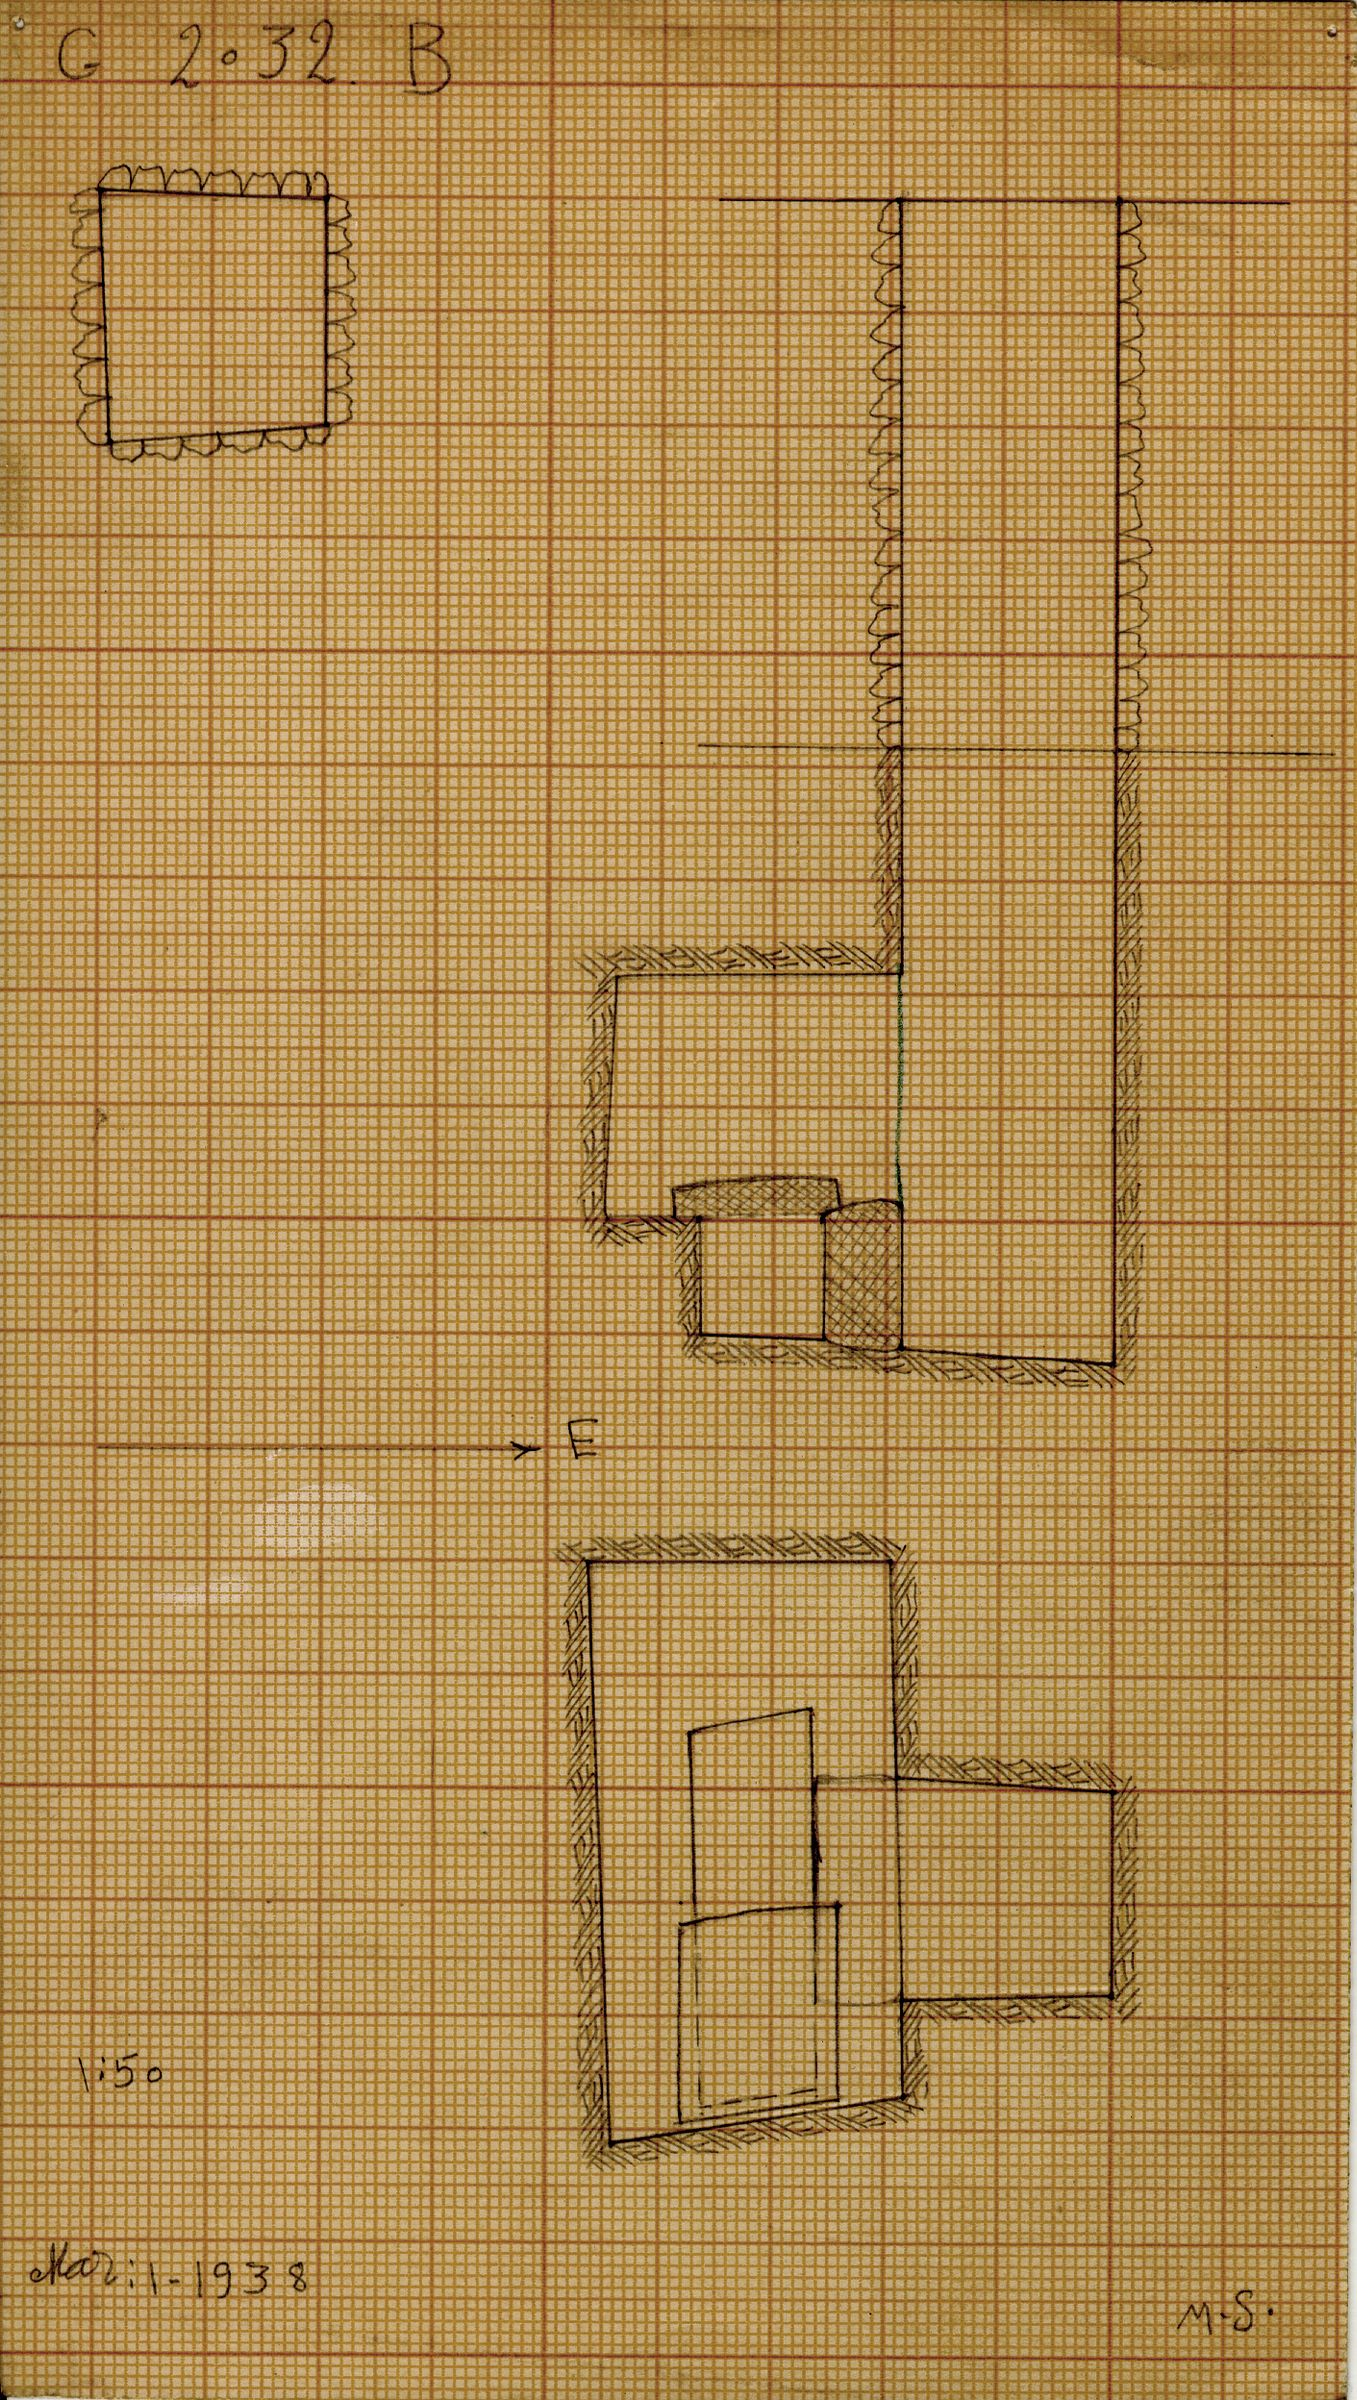 Maps and plans: G 2032, Shaft B